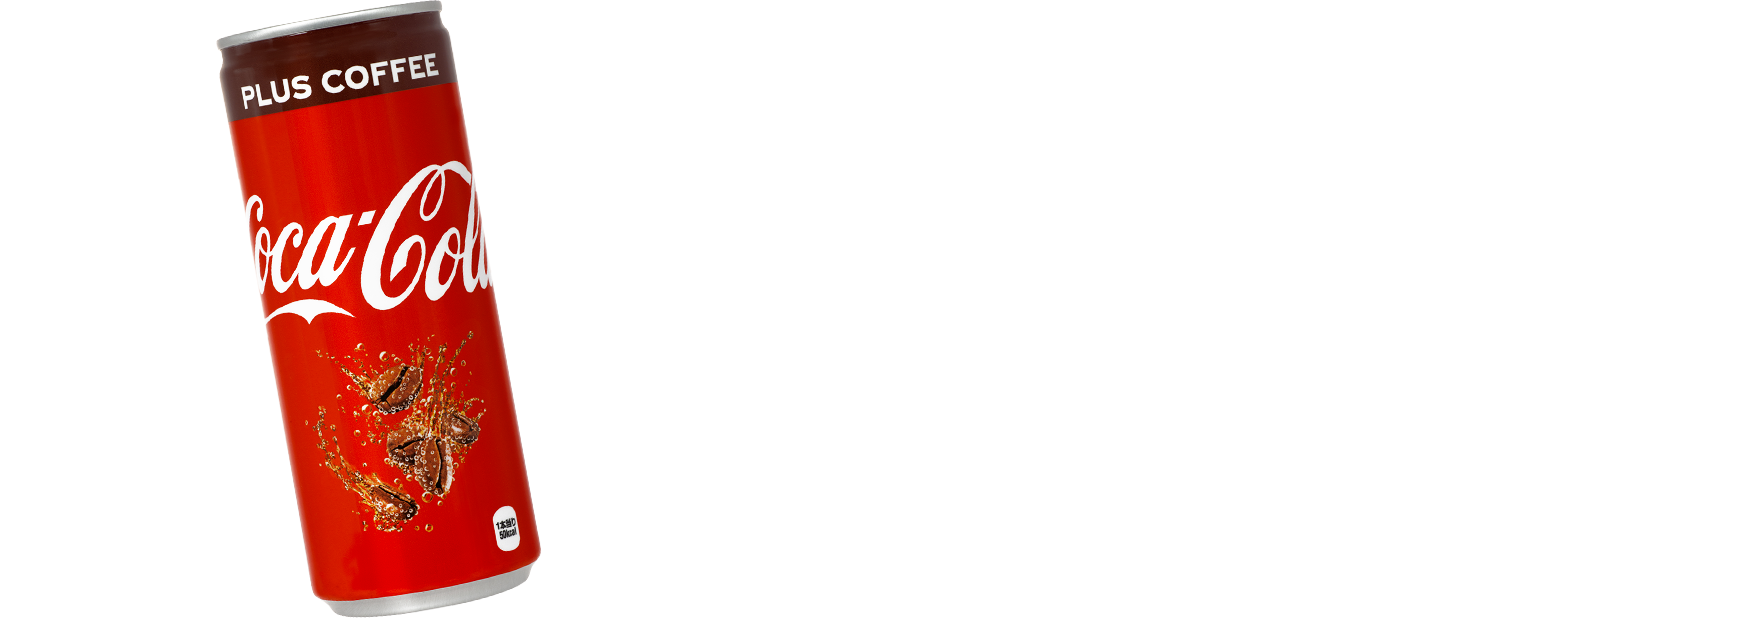 JAPAN EXCLUSIVE COCA COLAPLUS COFFEE AVAILABLE INTHIS MAY'S AMAIBOX GIGA!